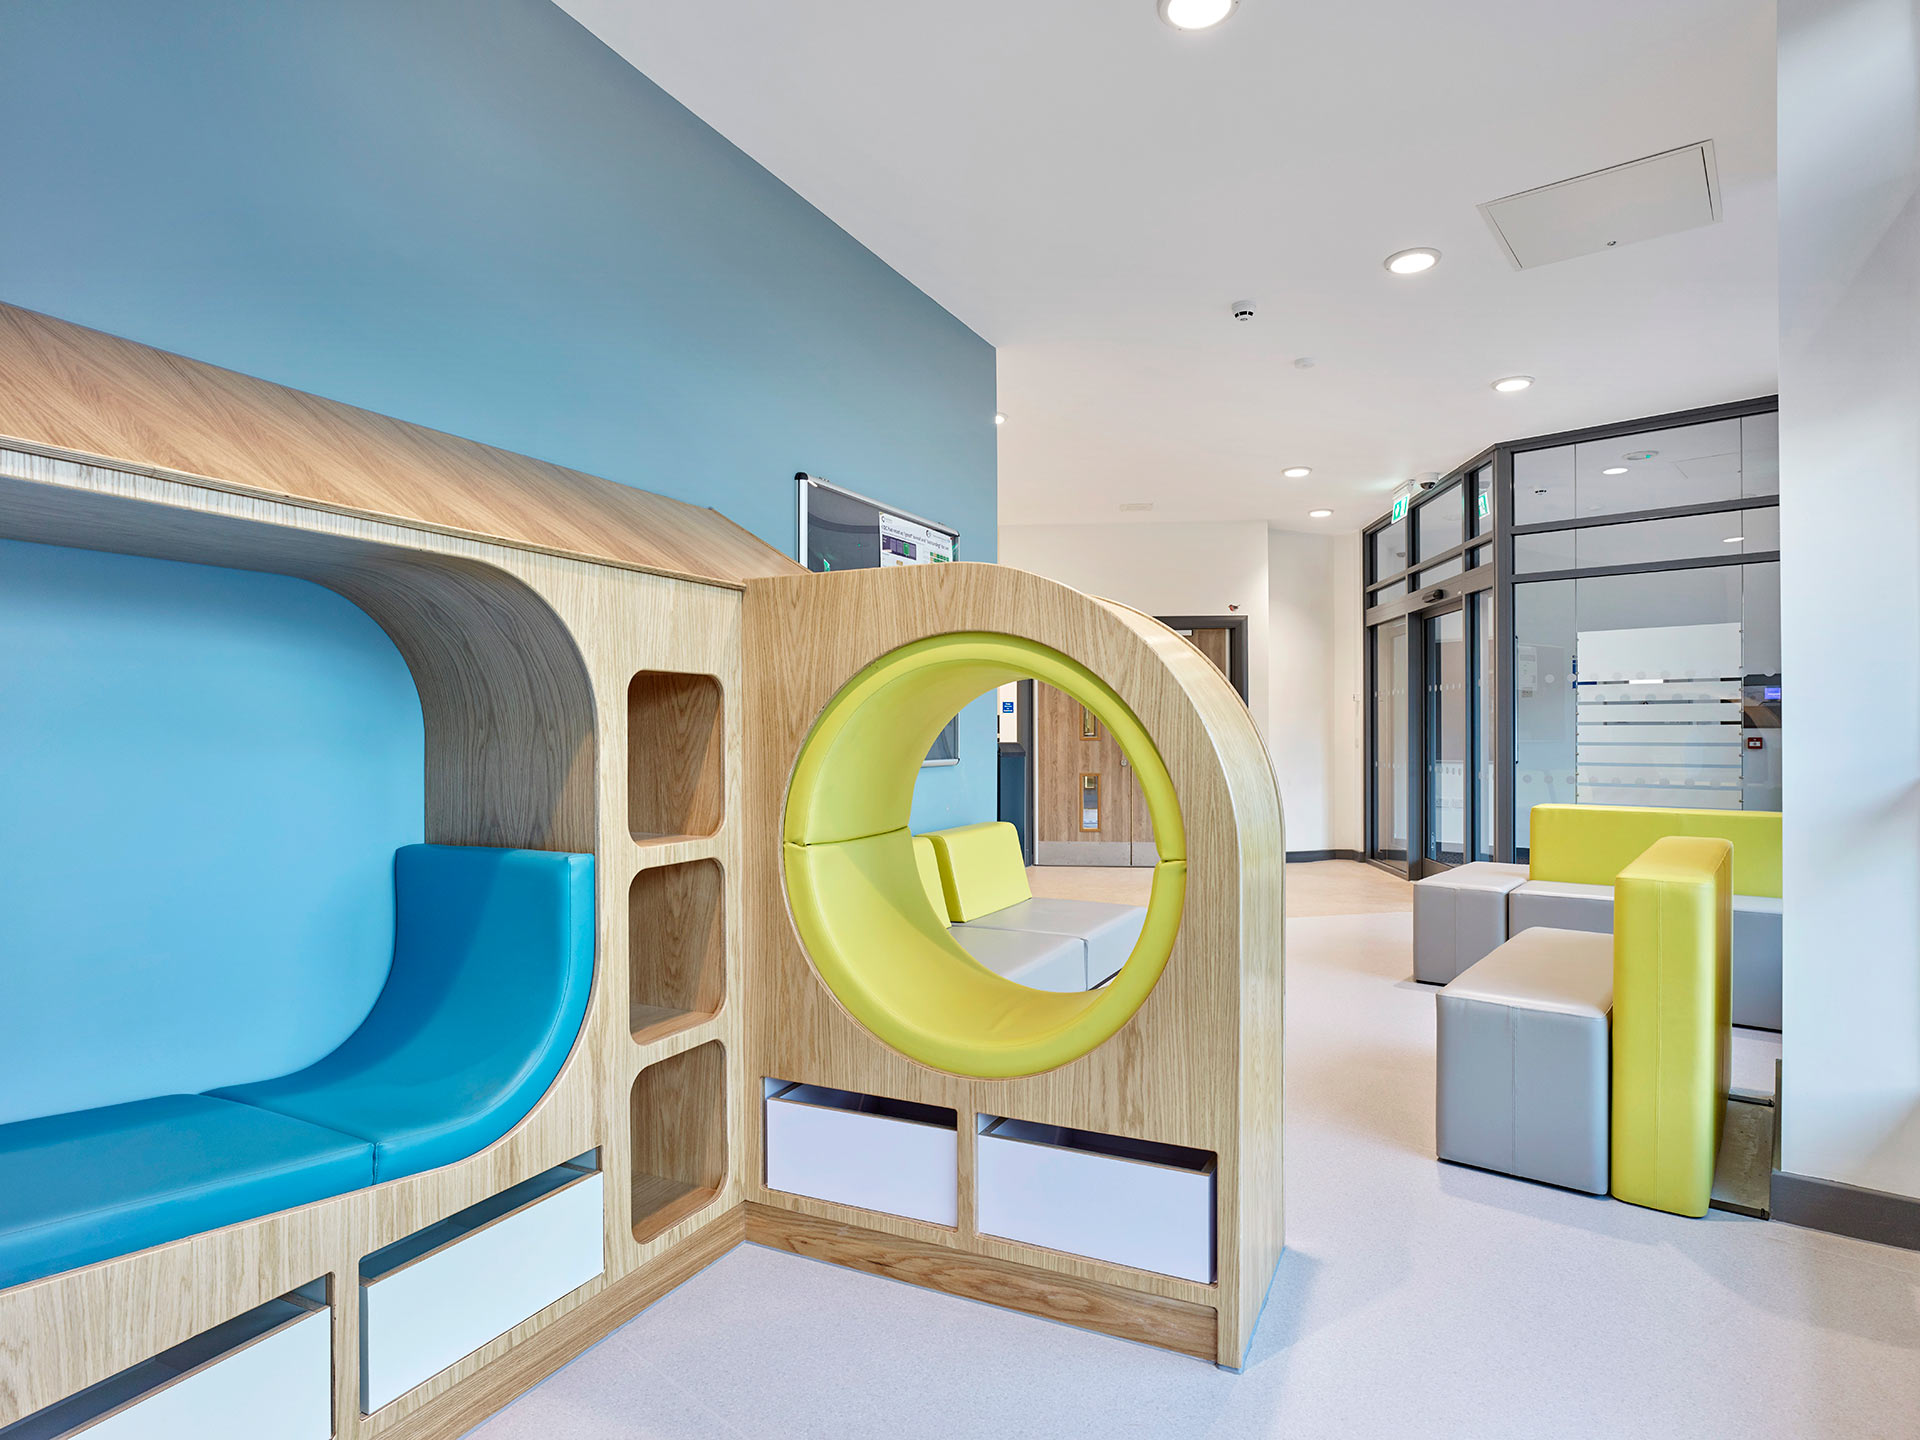 Bespoke playful seating for children waiting in reception at Ancora House